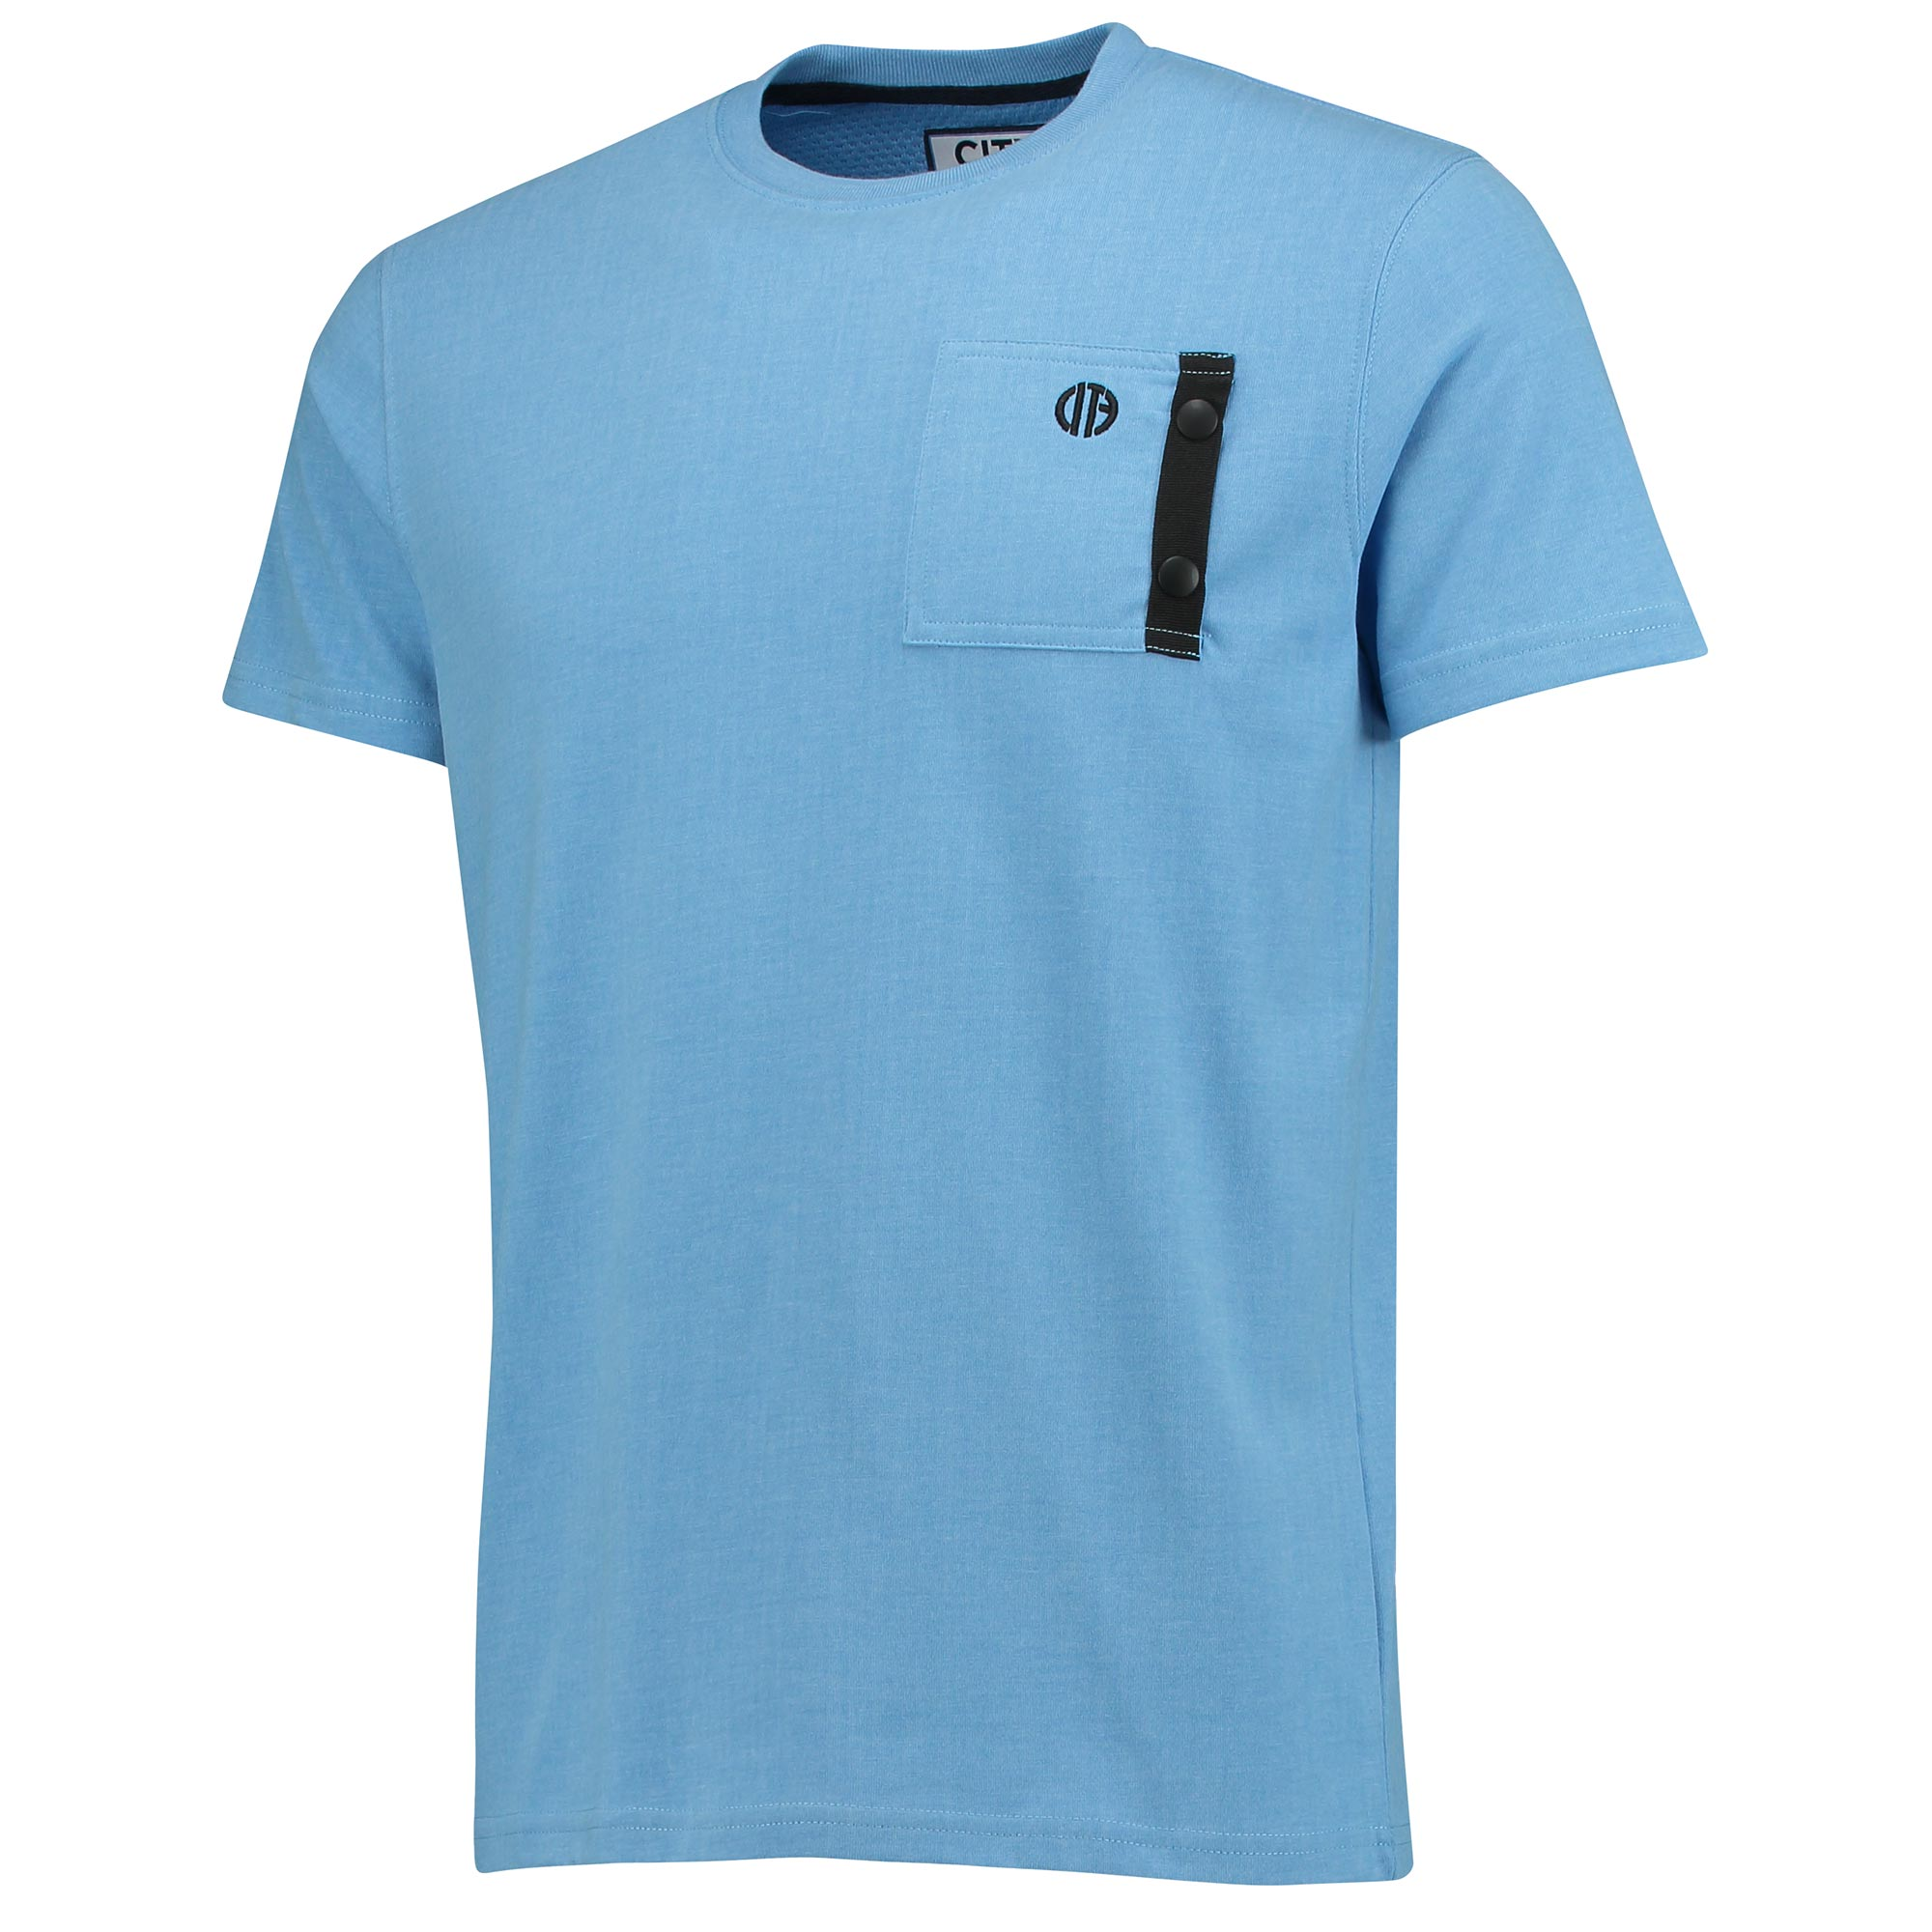 Manchester City Terrace Pocket T-Shirt - Sky